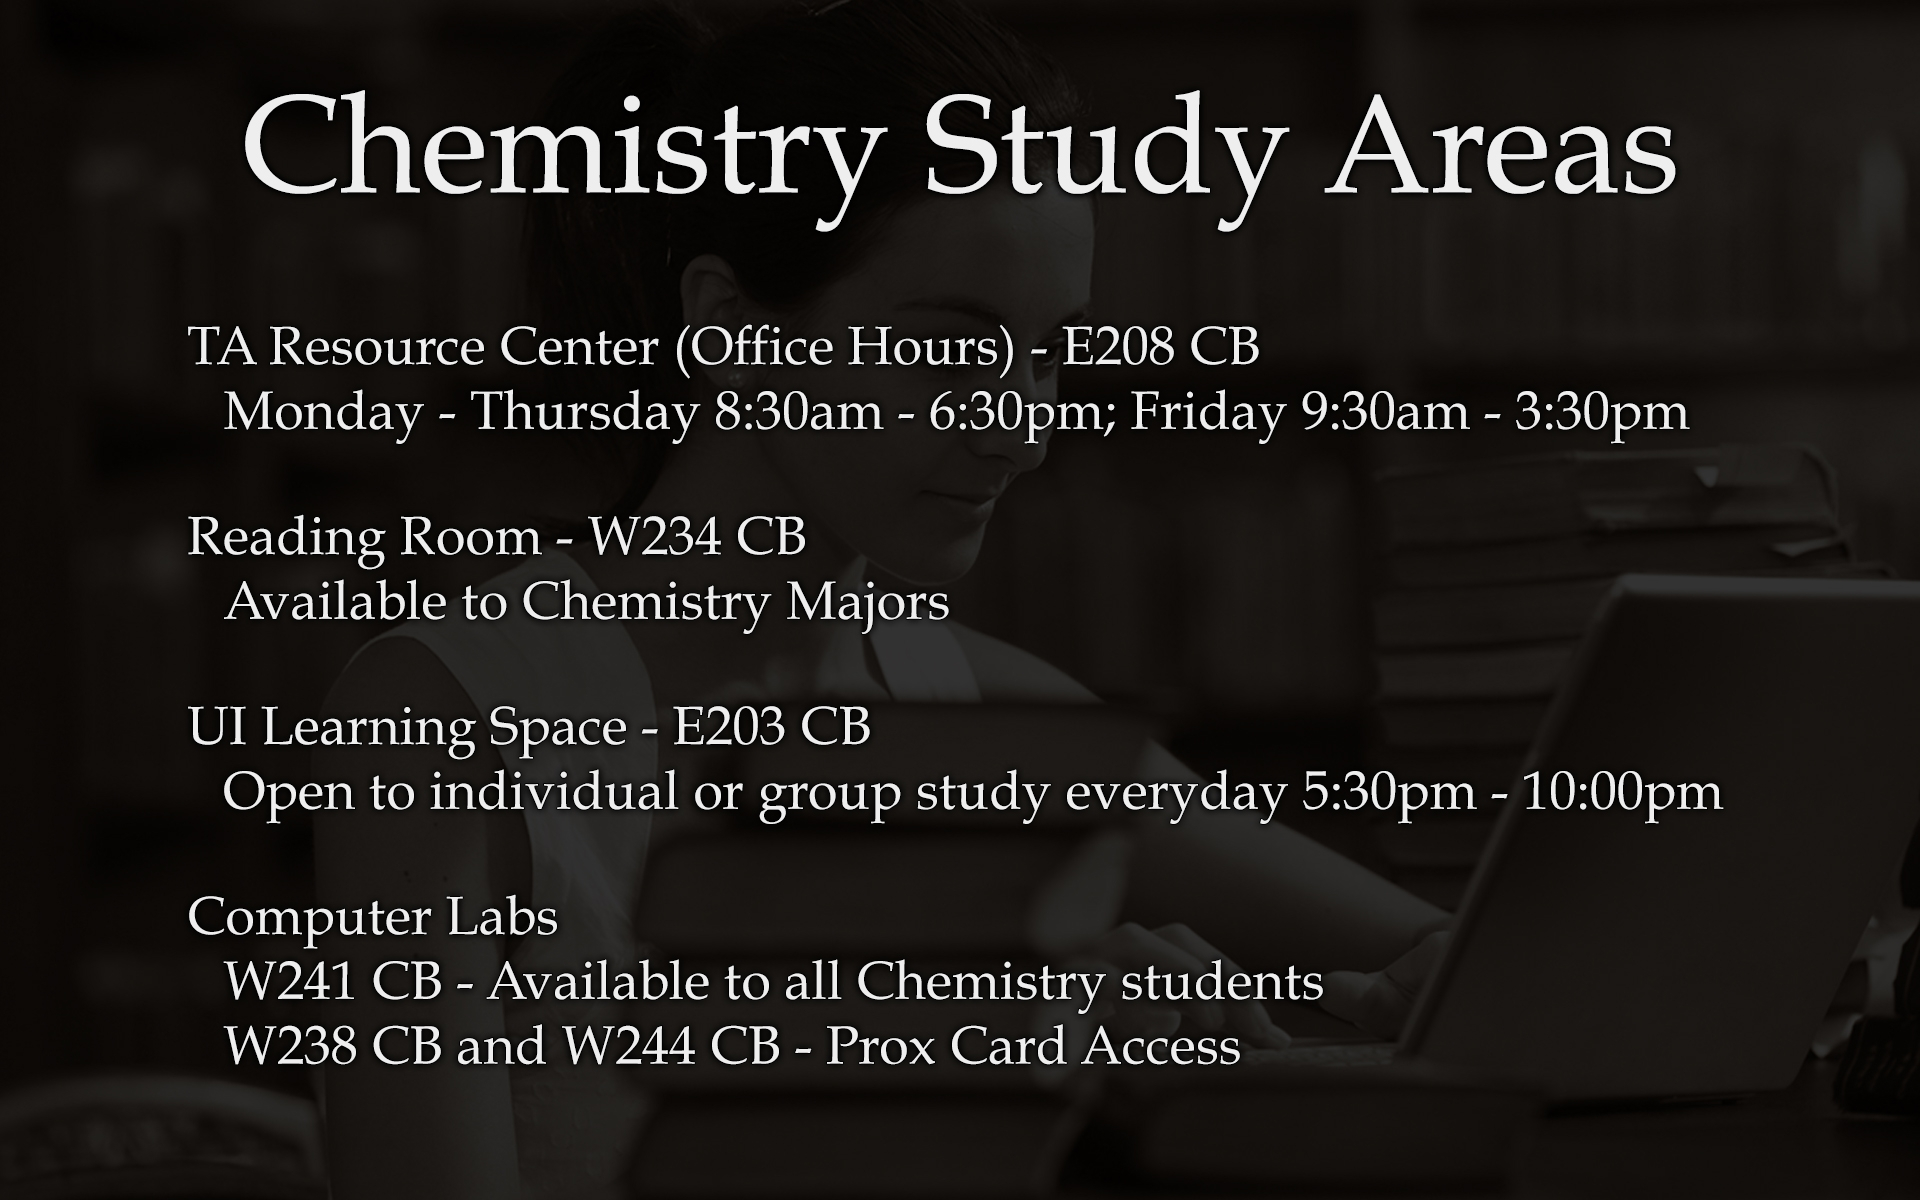 TA Resource Center (Office Hours) - E208 CB Monday - Thursday 8:30am - 6:30pm; Friday 9:30am - 3:30pm